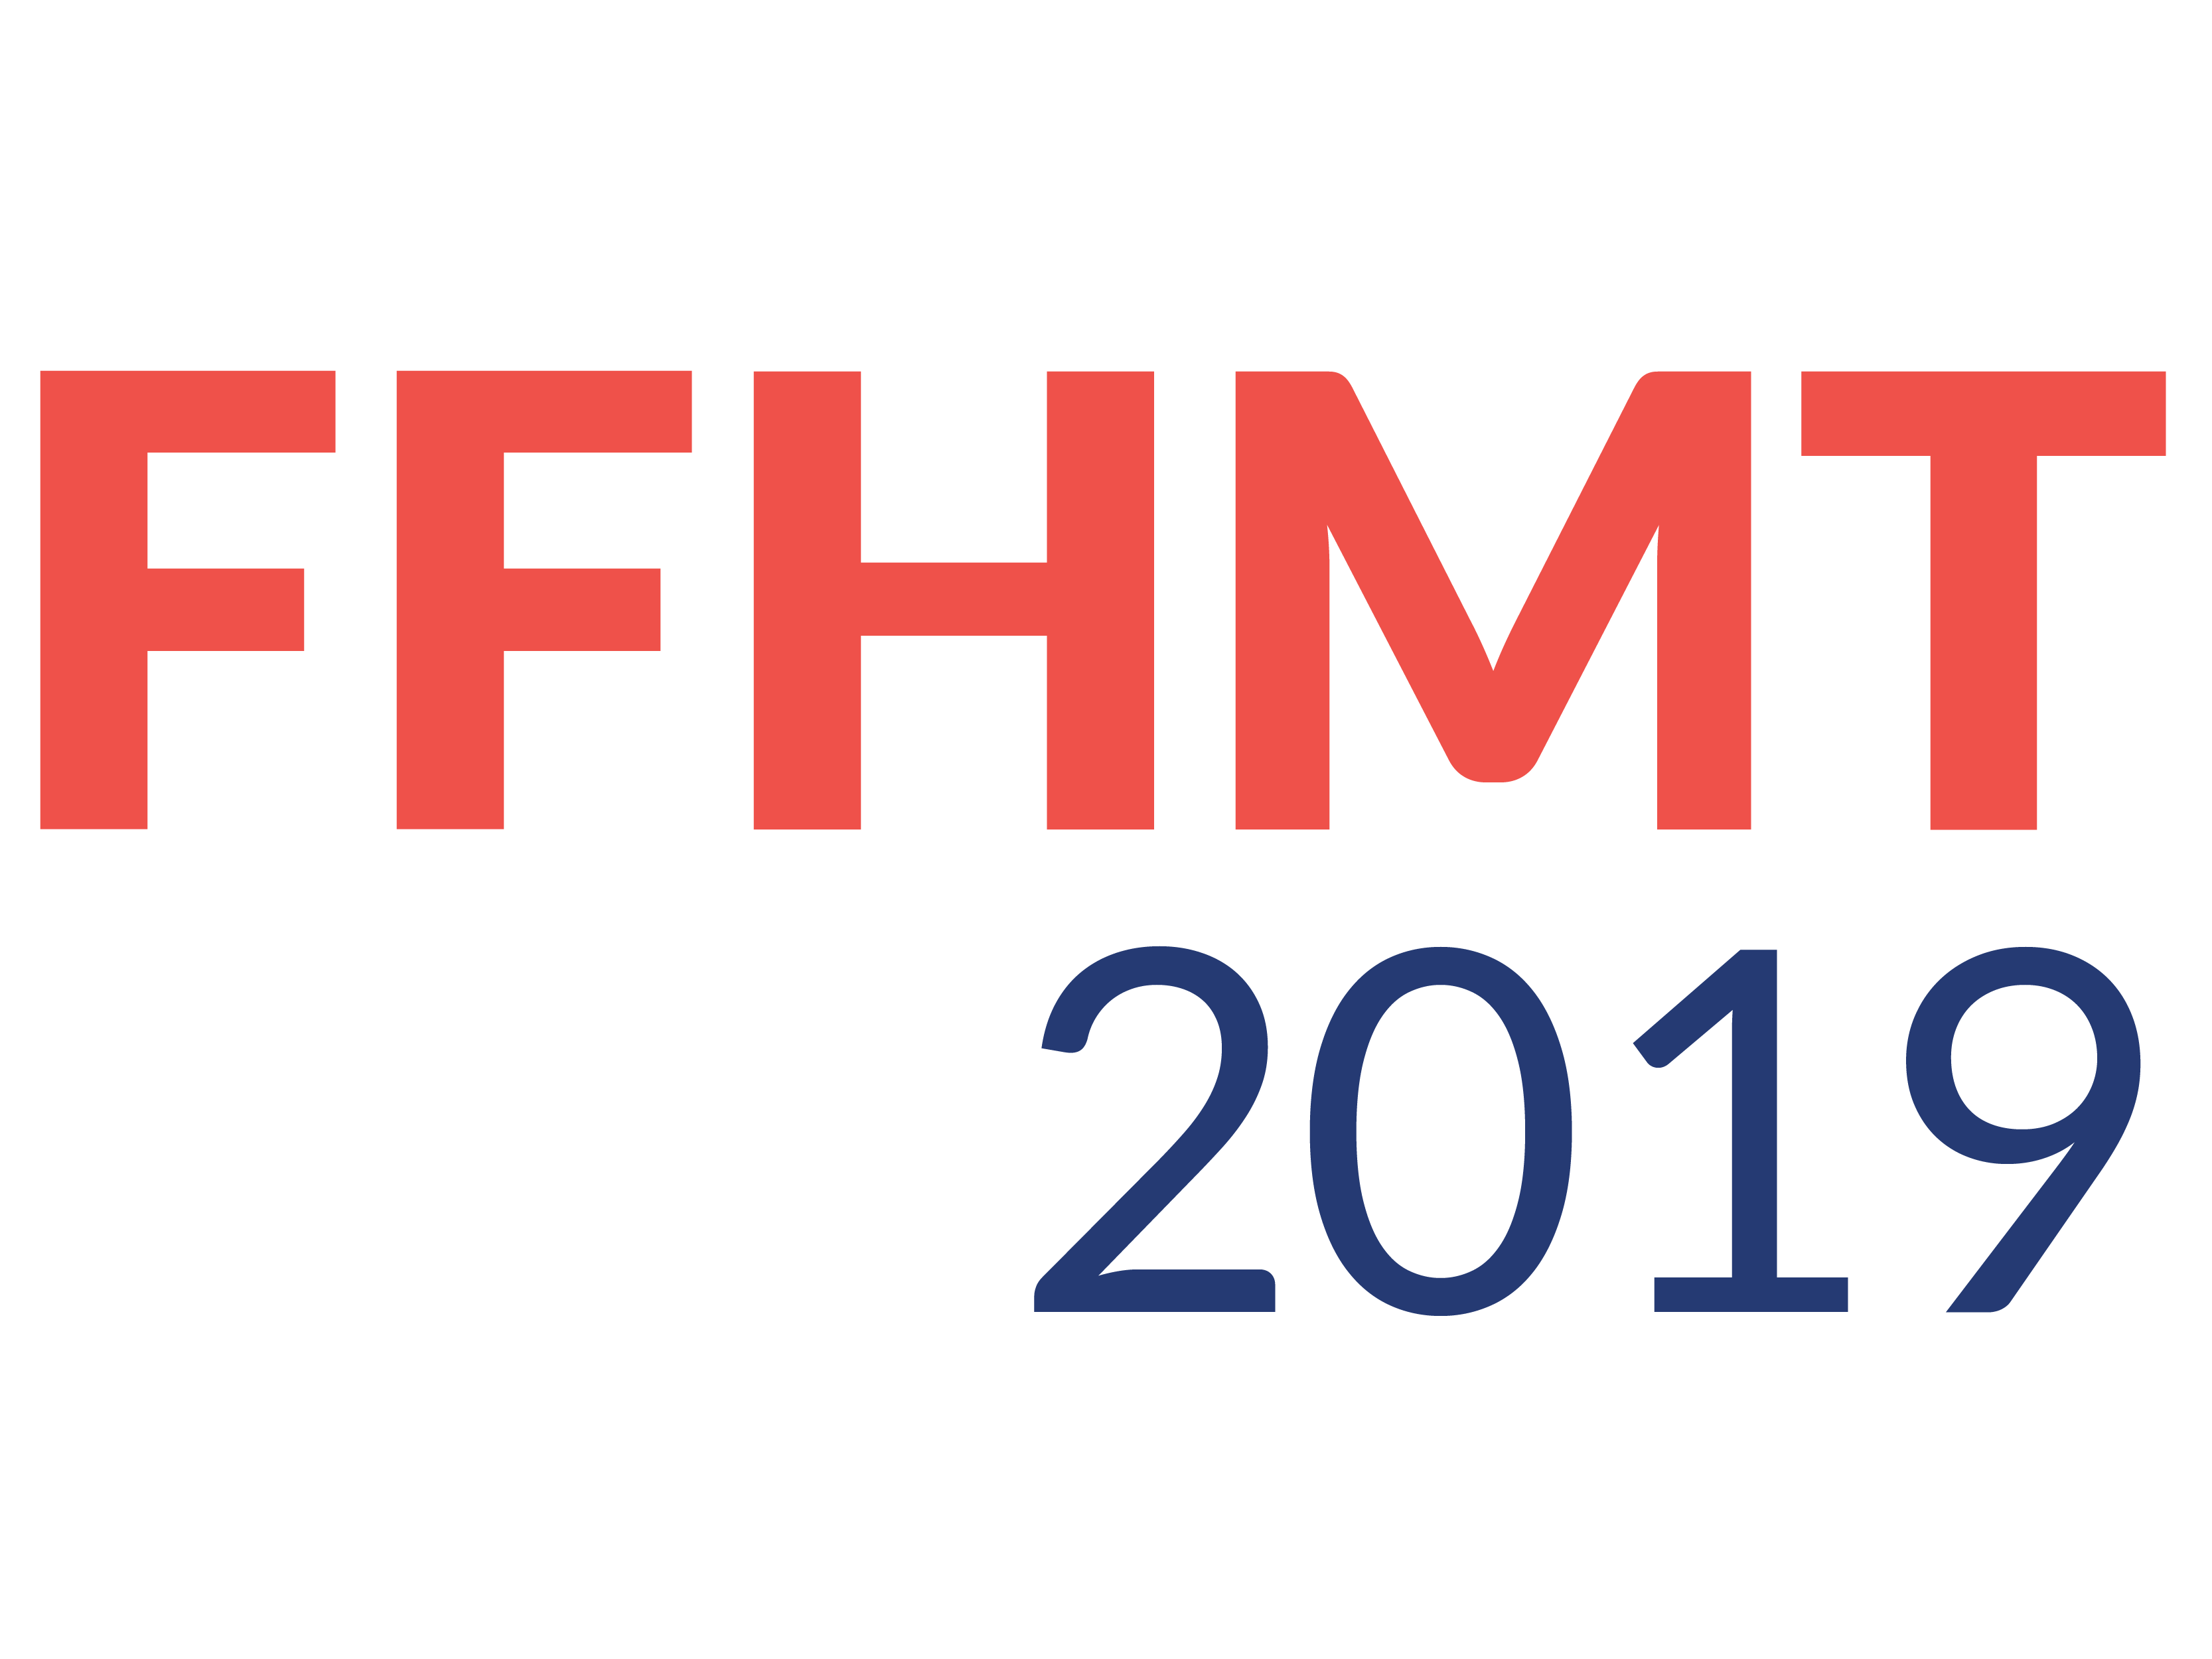 FFHMT'20 - International Conference on Fluid Flow, Heat and Mass